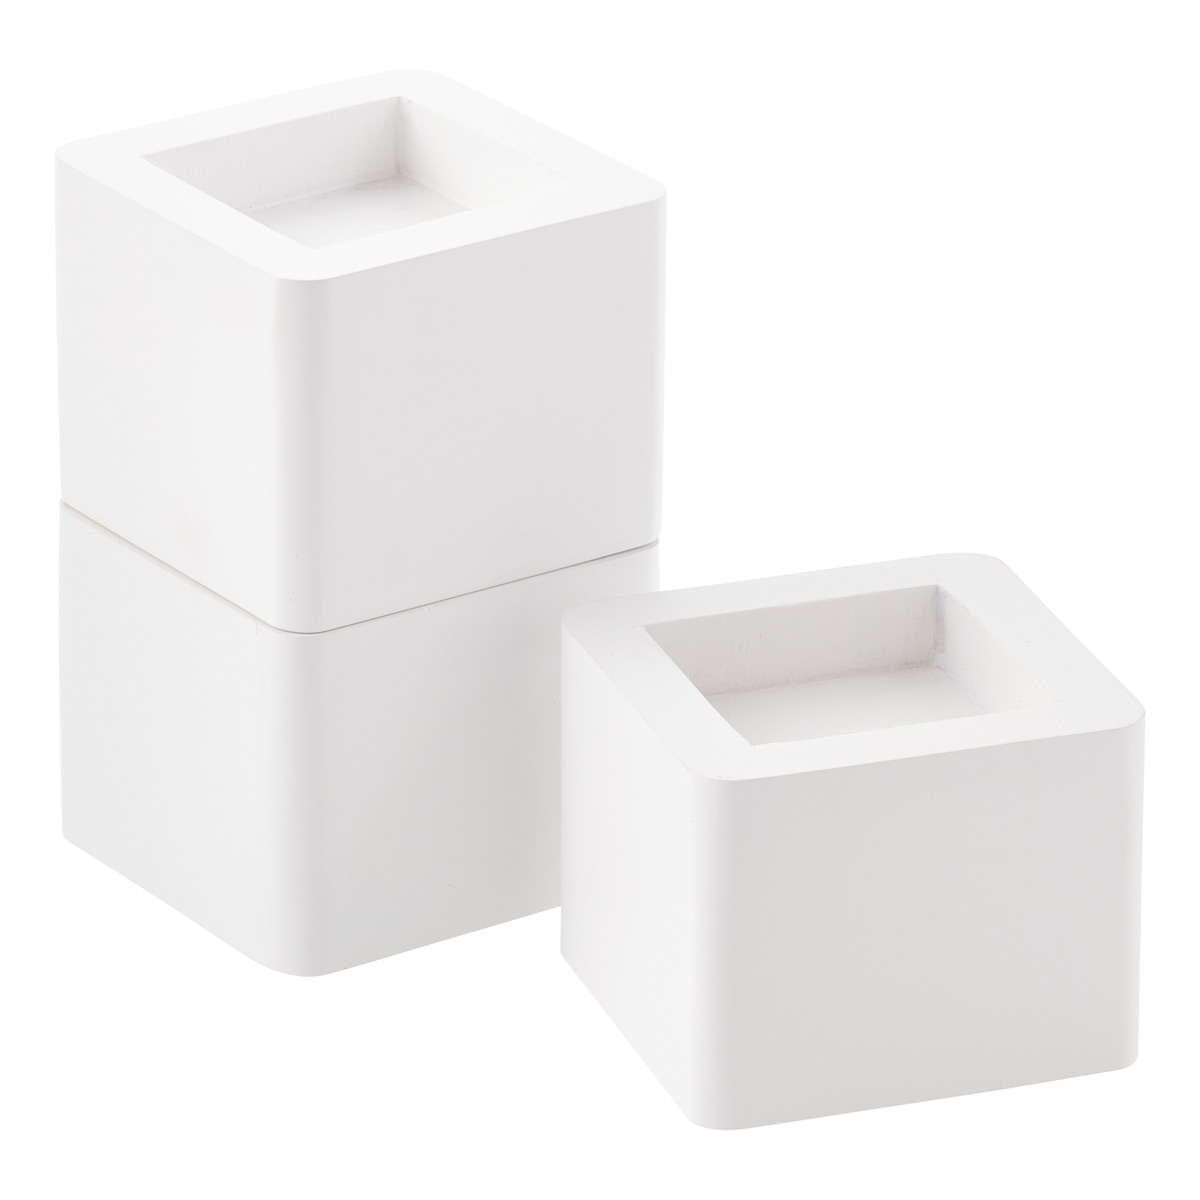 White Solid Wood Bed Risers ...